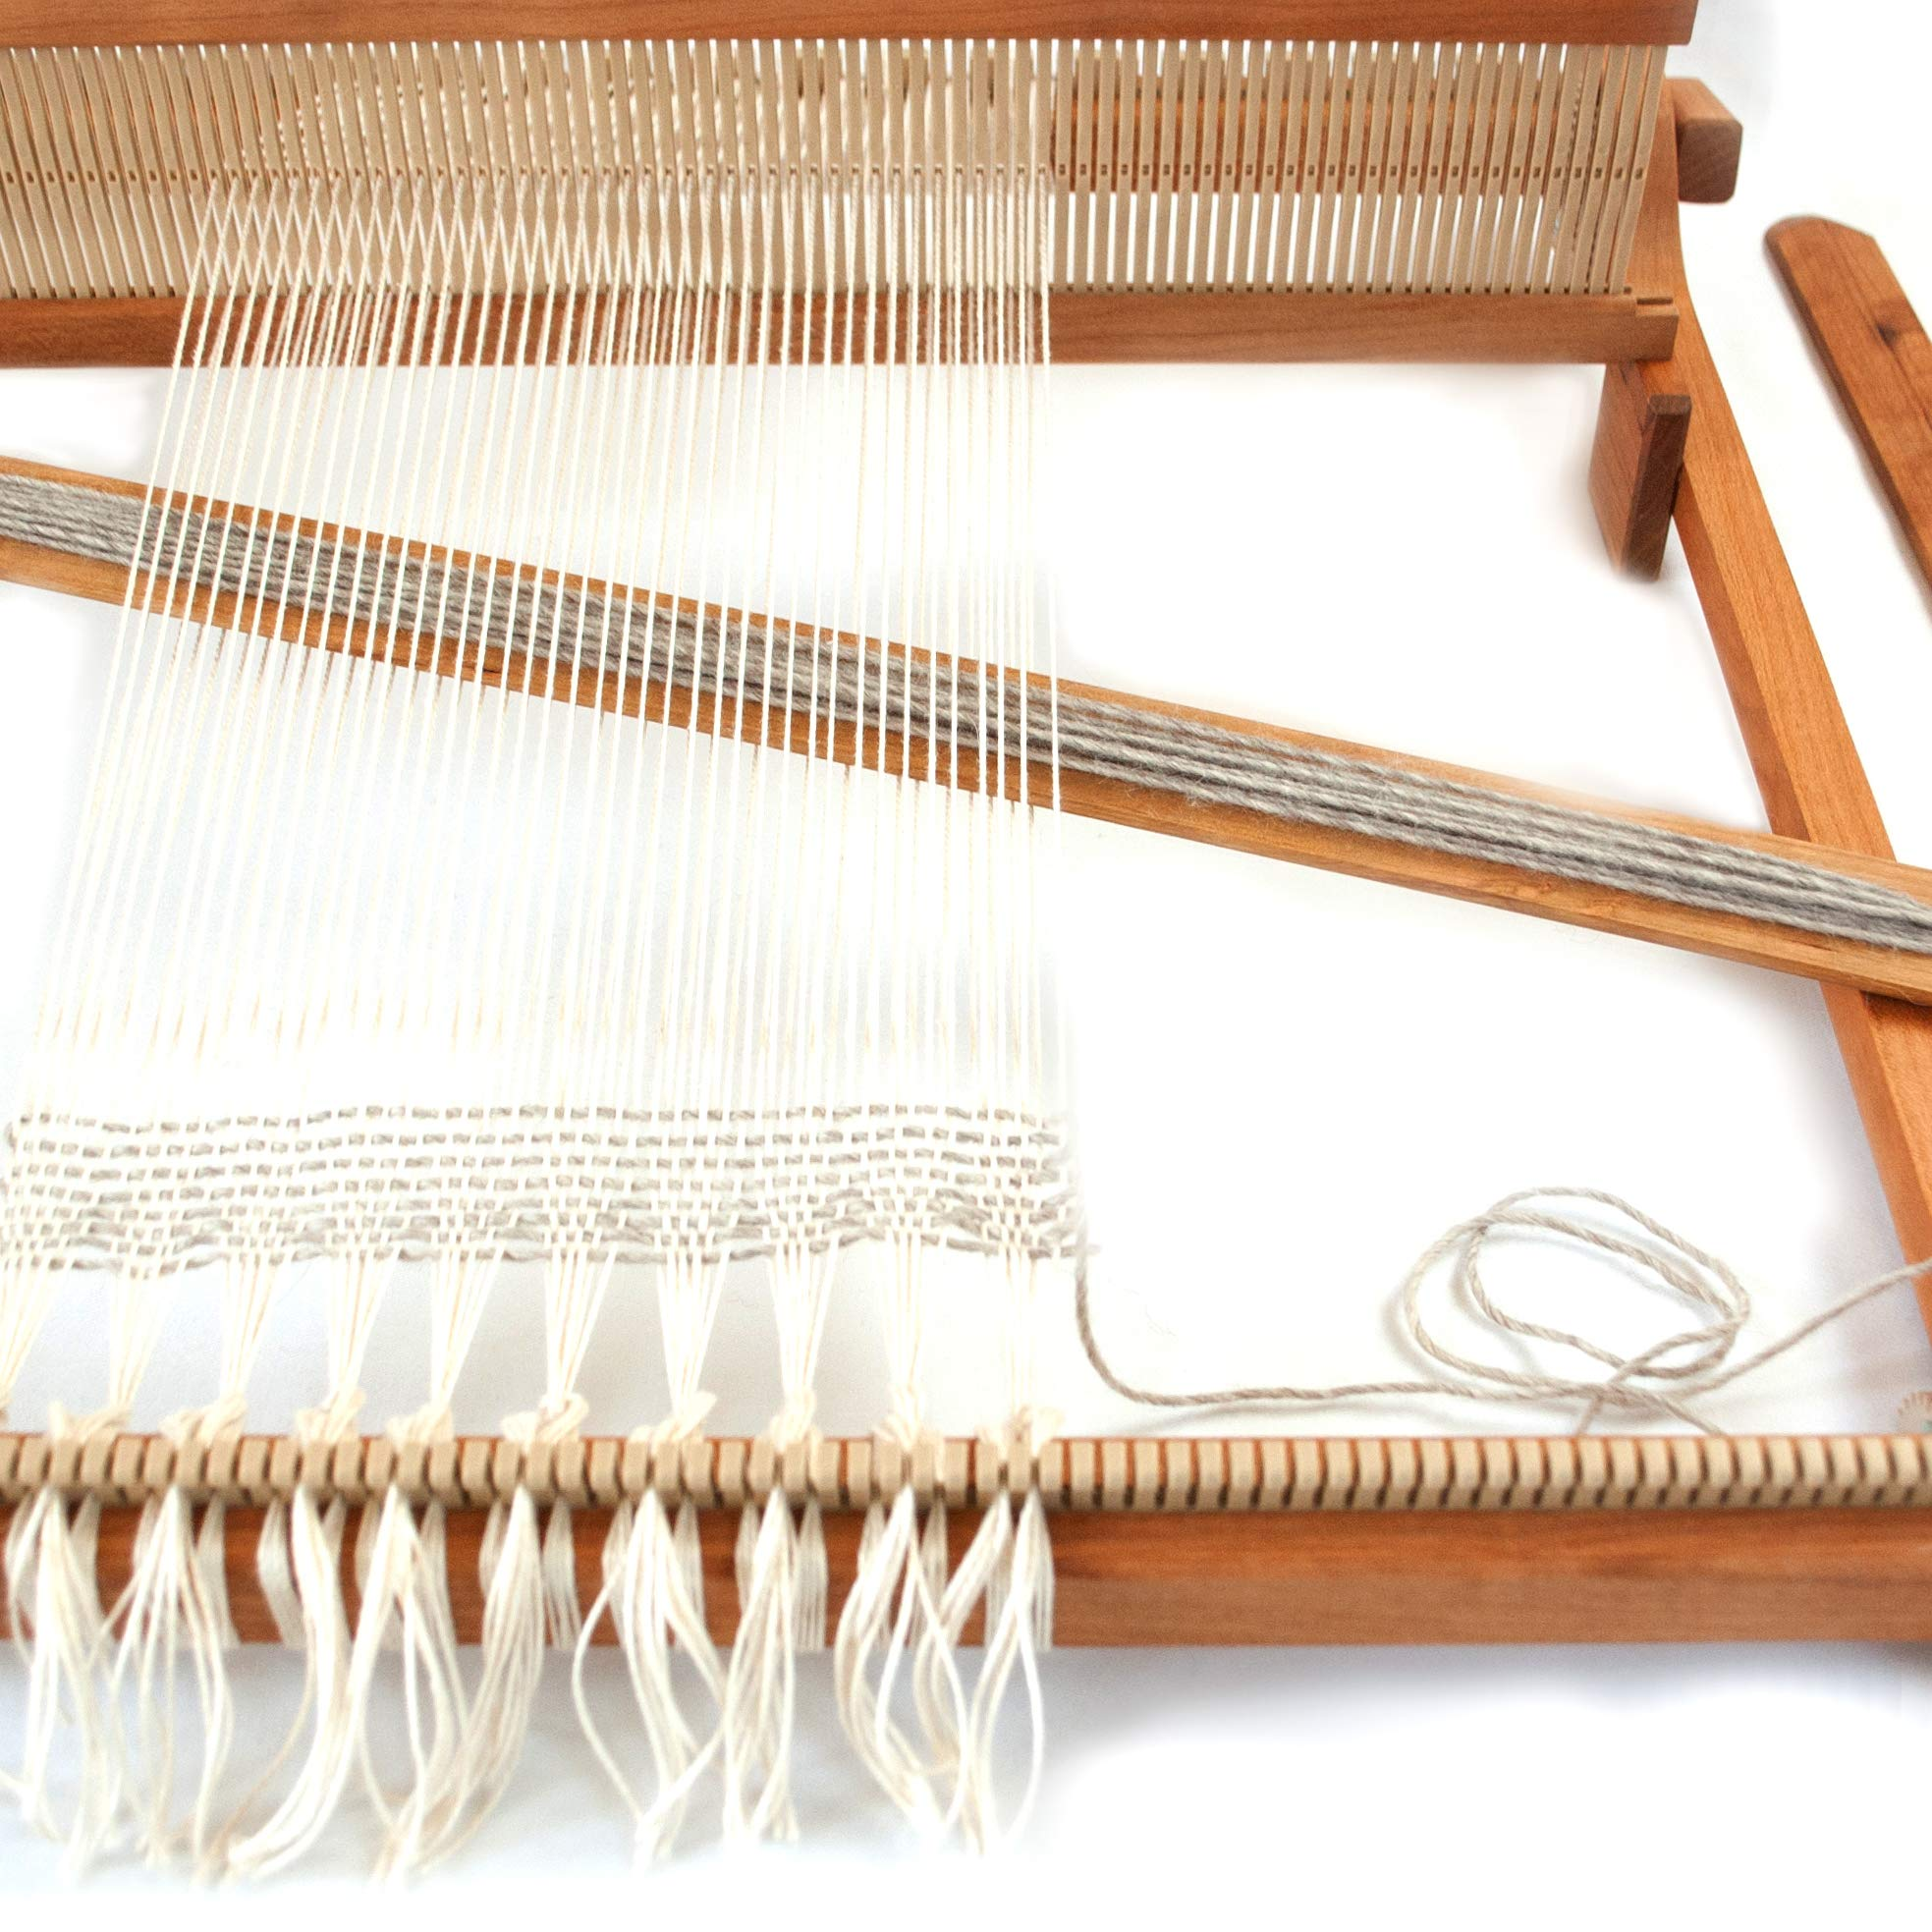 Beka Original Rigid Heddle Loom, SG-20''